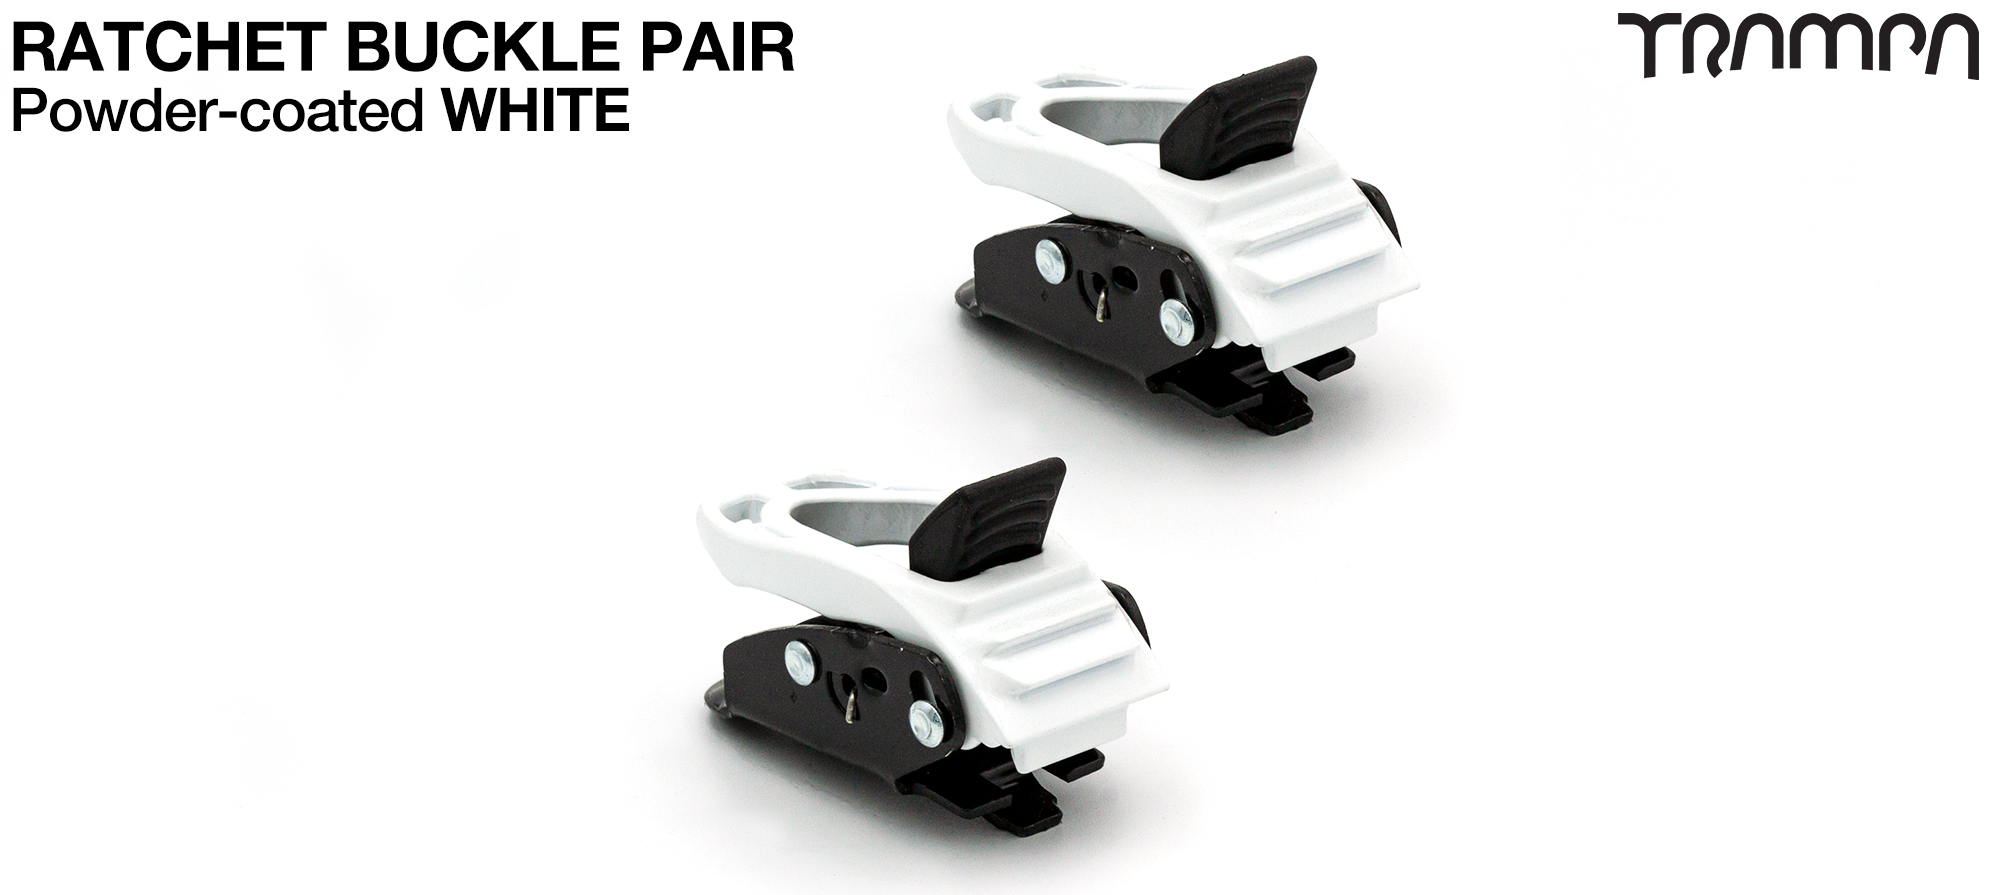 WHITE Powder Coated Ratchet Buckle (+£15)